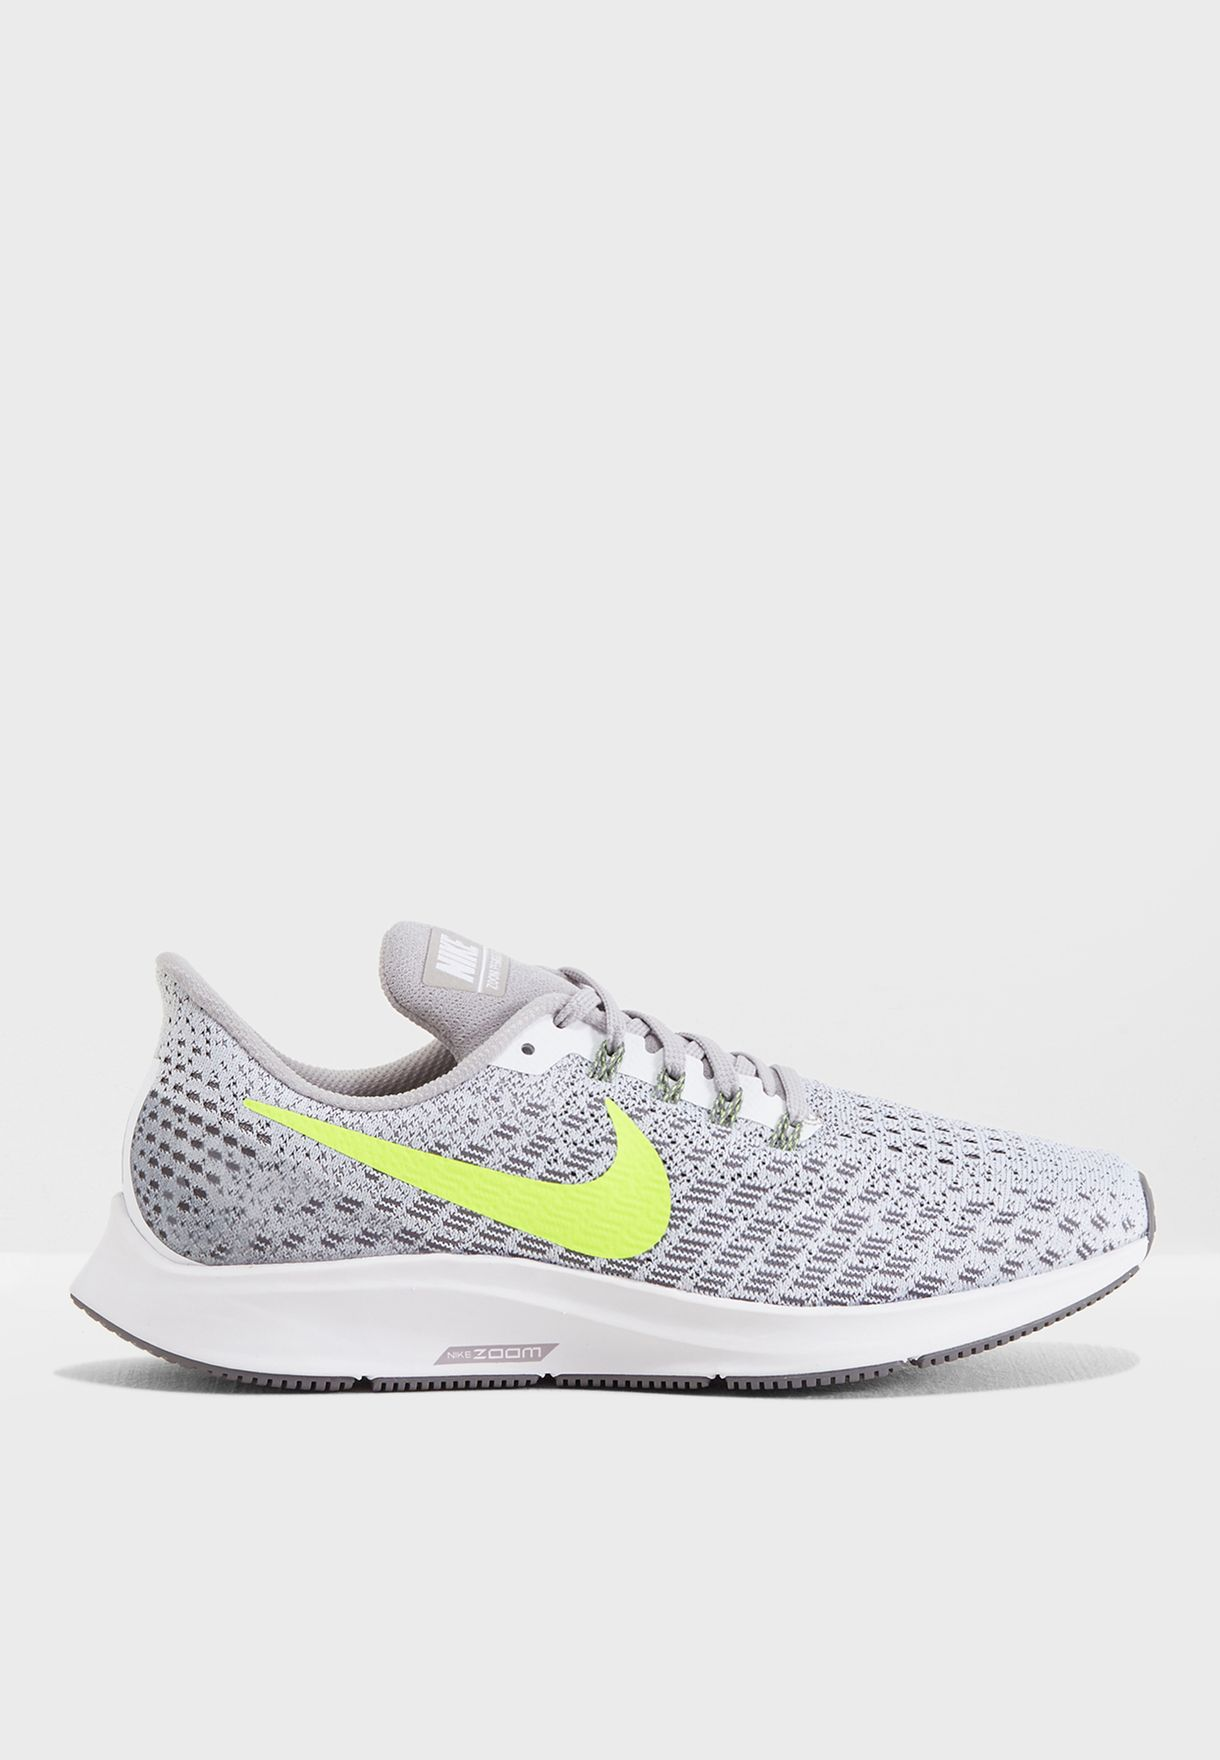 bb2a439c0c8f3 ... usa shop nike grey air zoom pegasus 35 942855 101 for women in uae  ni727sh76lut 30adf